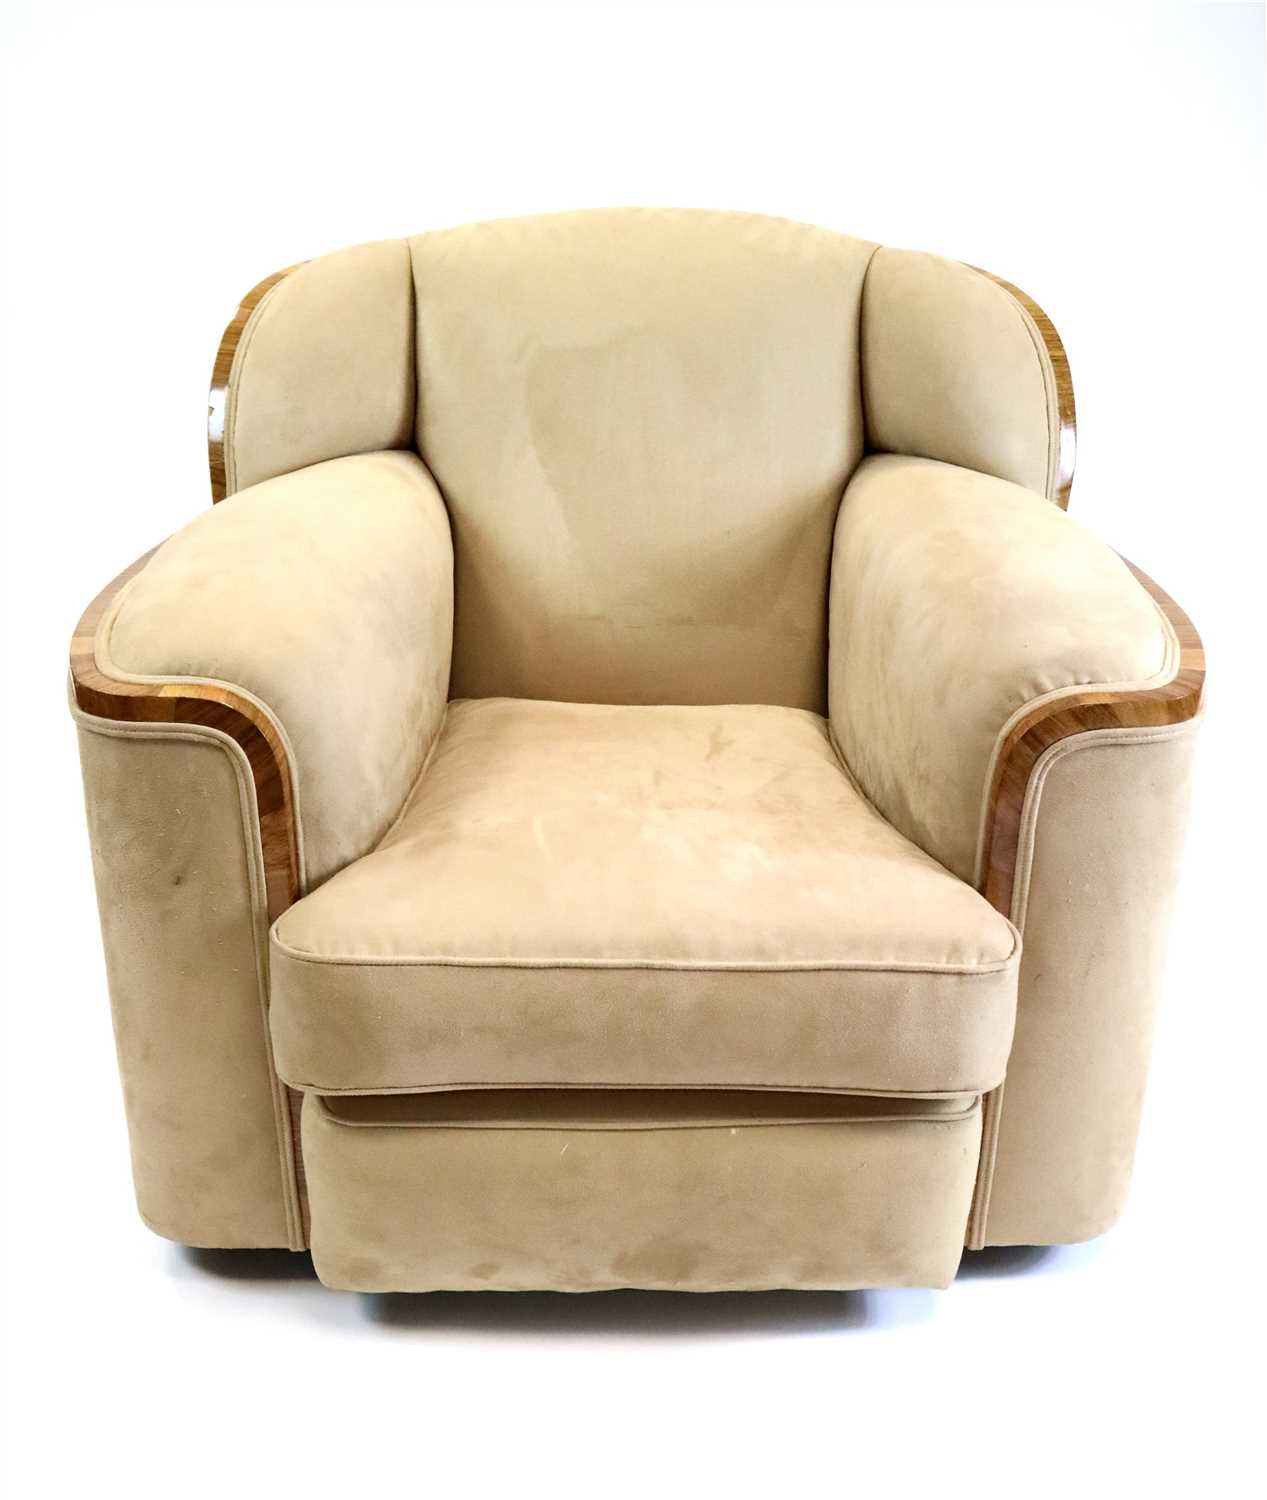 214 - A large pair of upholstered Art Deco style tub chairs